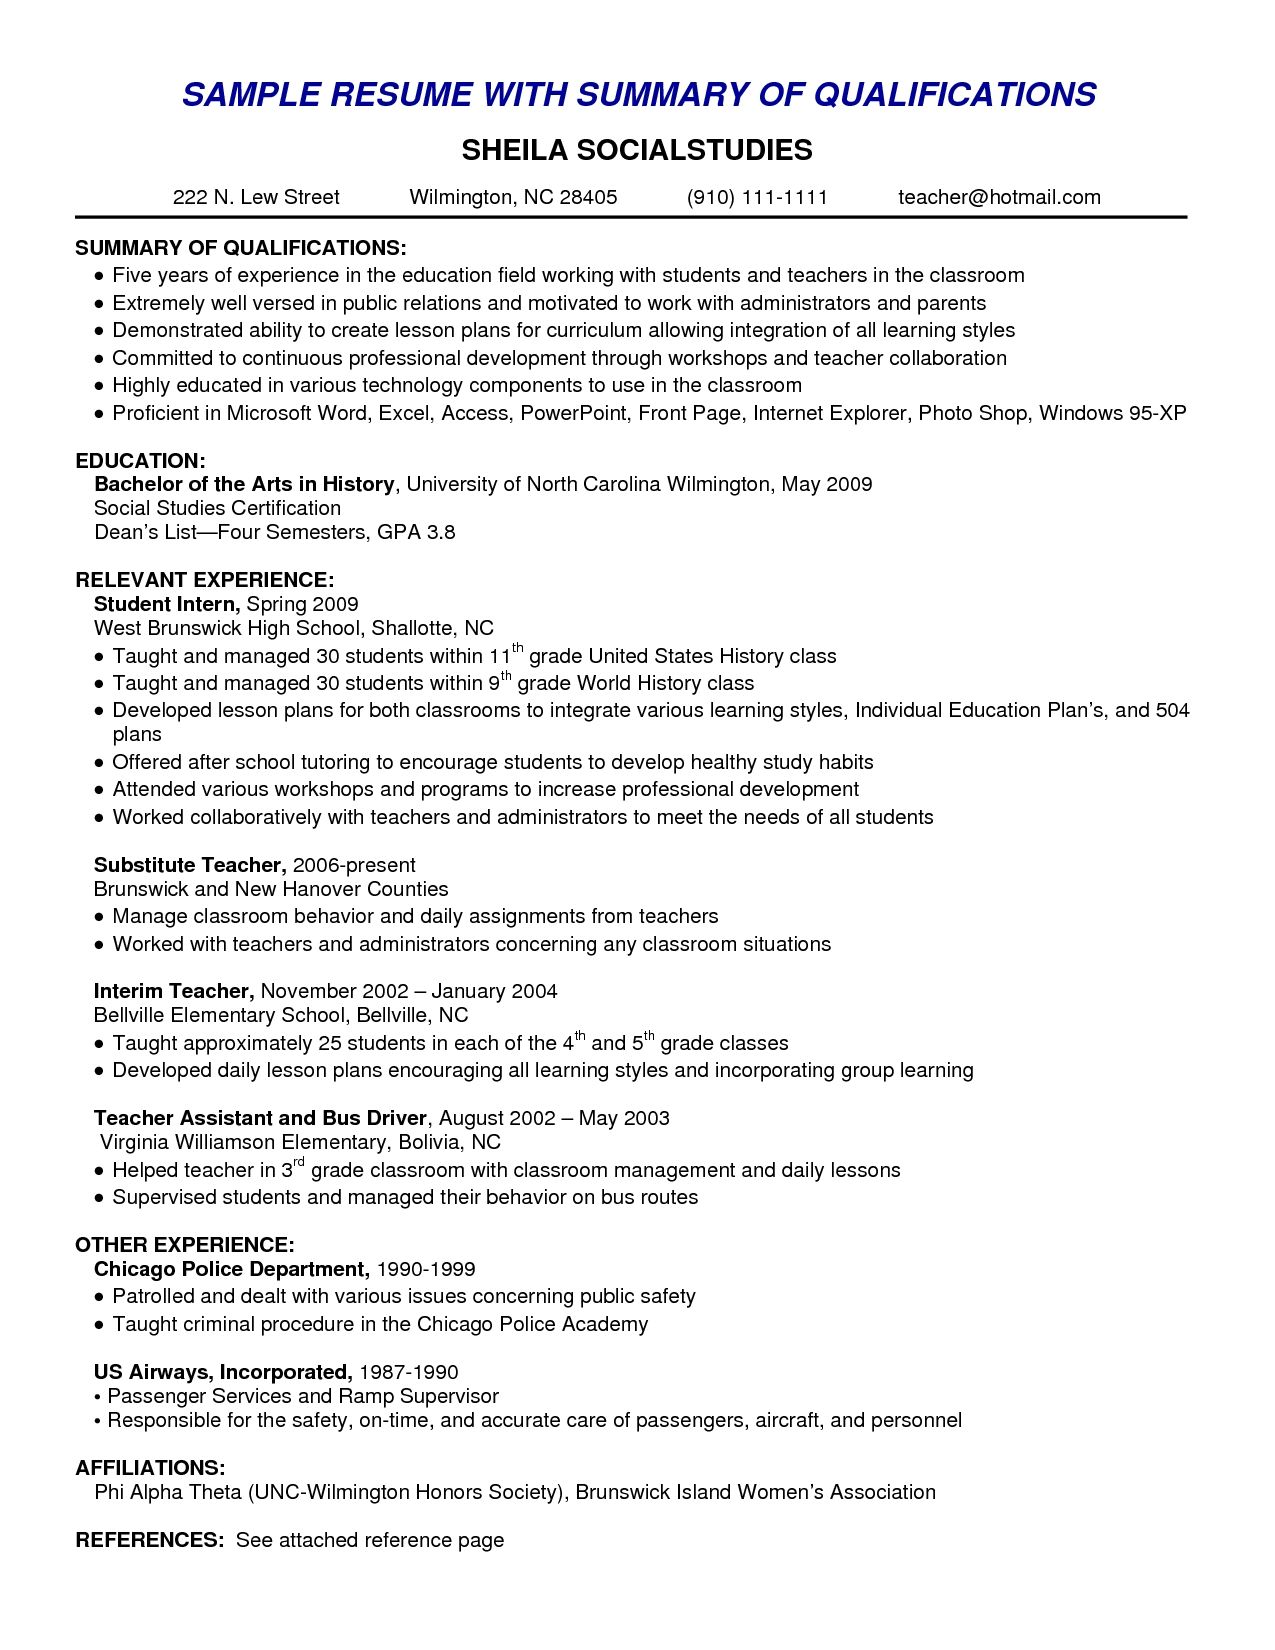 Example Resume Summary Resume Skills Summary Examples Example Of Skills Summary For